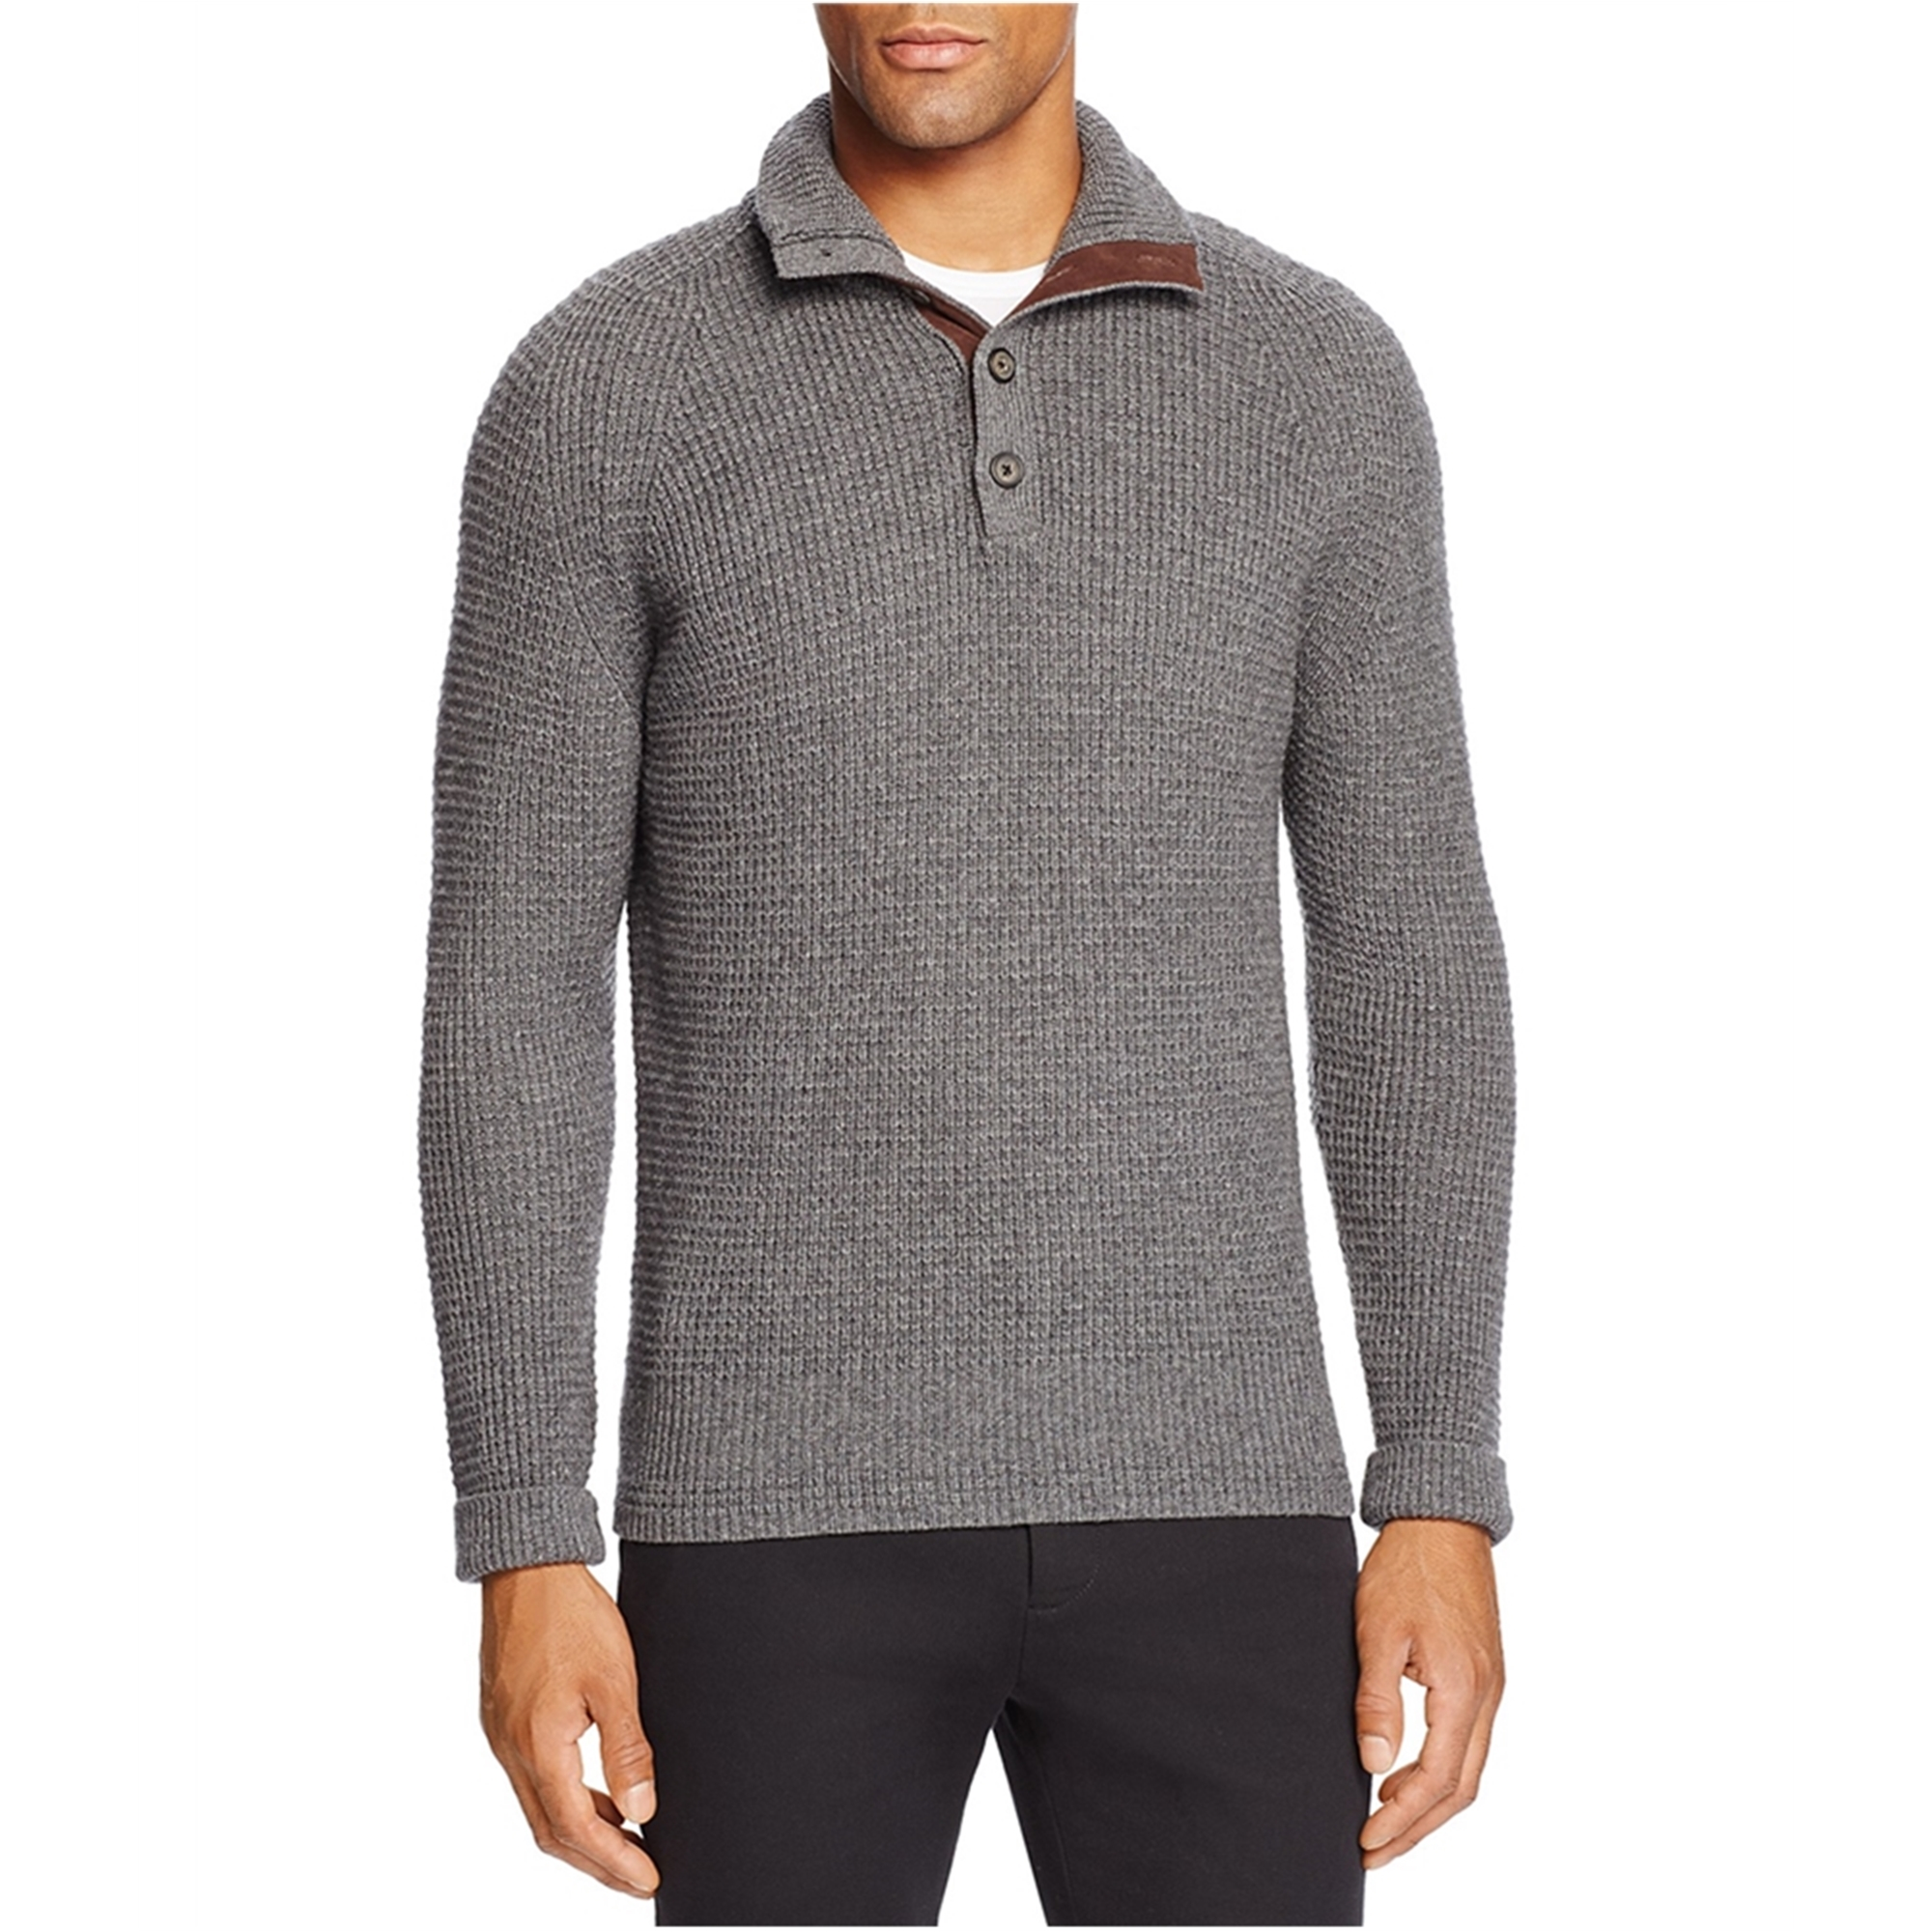 Bloomingdale's Bloomingdale's Mens Cashmere Blend Pullover Sweater, grey, Small